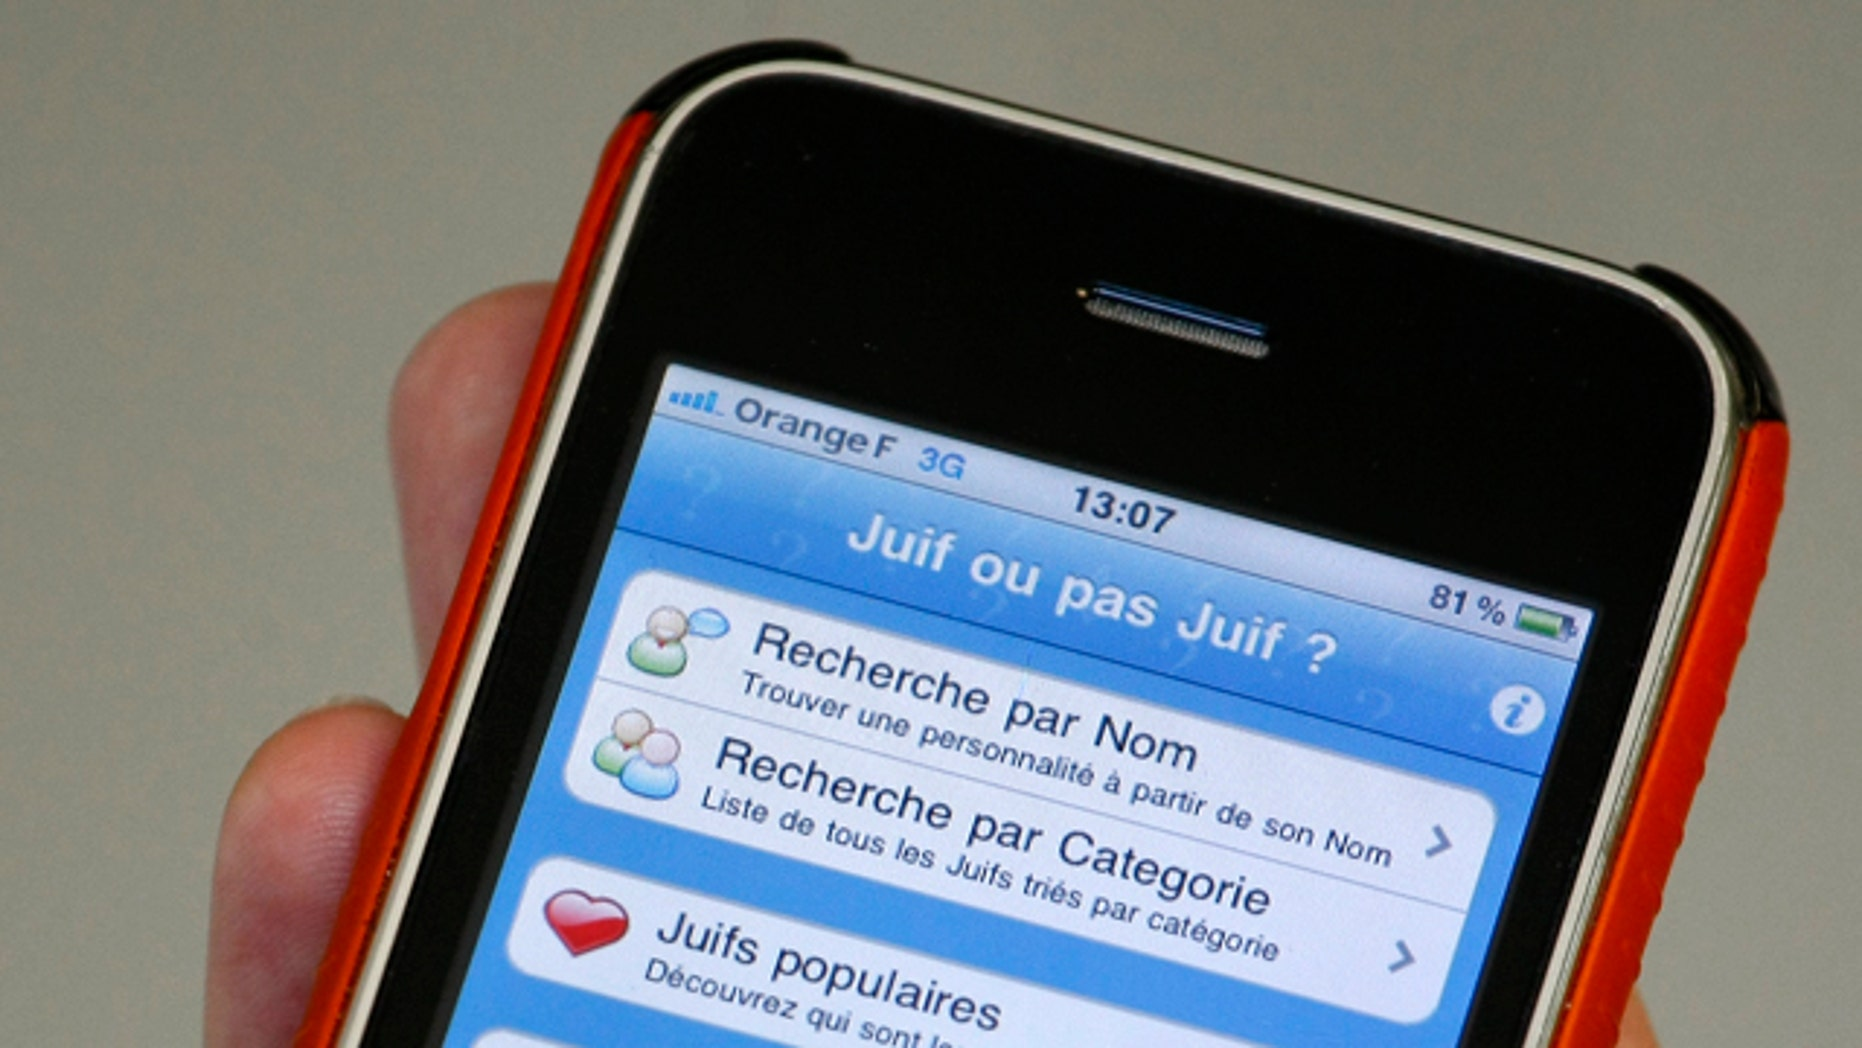 """Sept. 14, 2011: The iPhone application """"Jew or not Jew?"""" violates France's strict laws banning listing people according to their religious affiliation, and was pulled from the iPhone app store."""